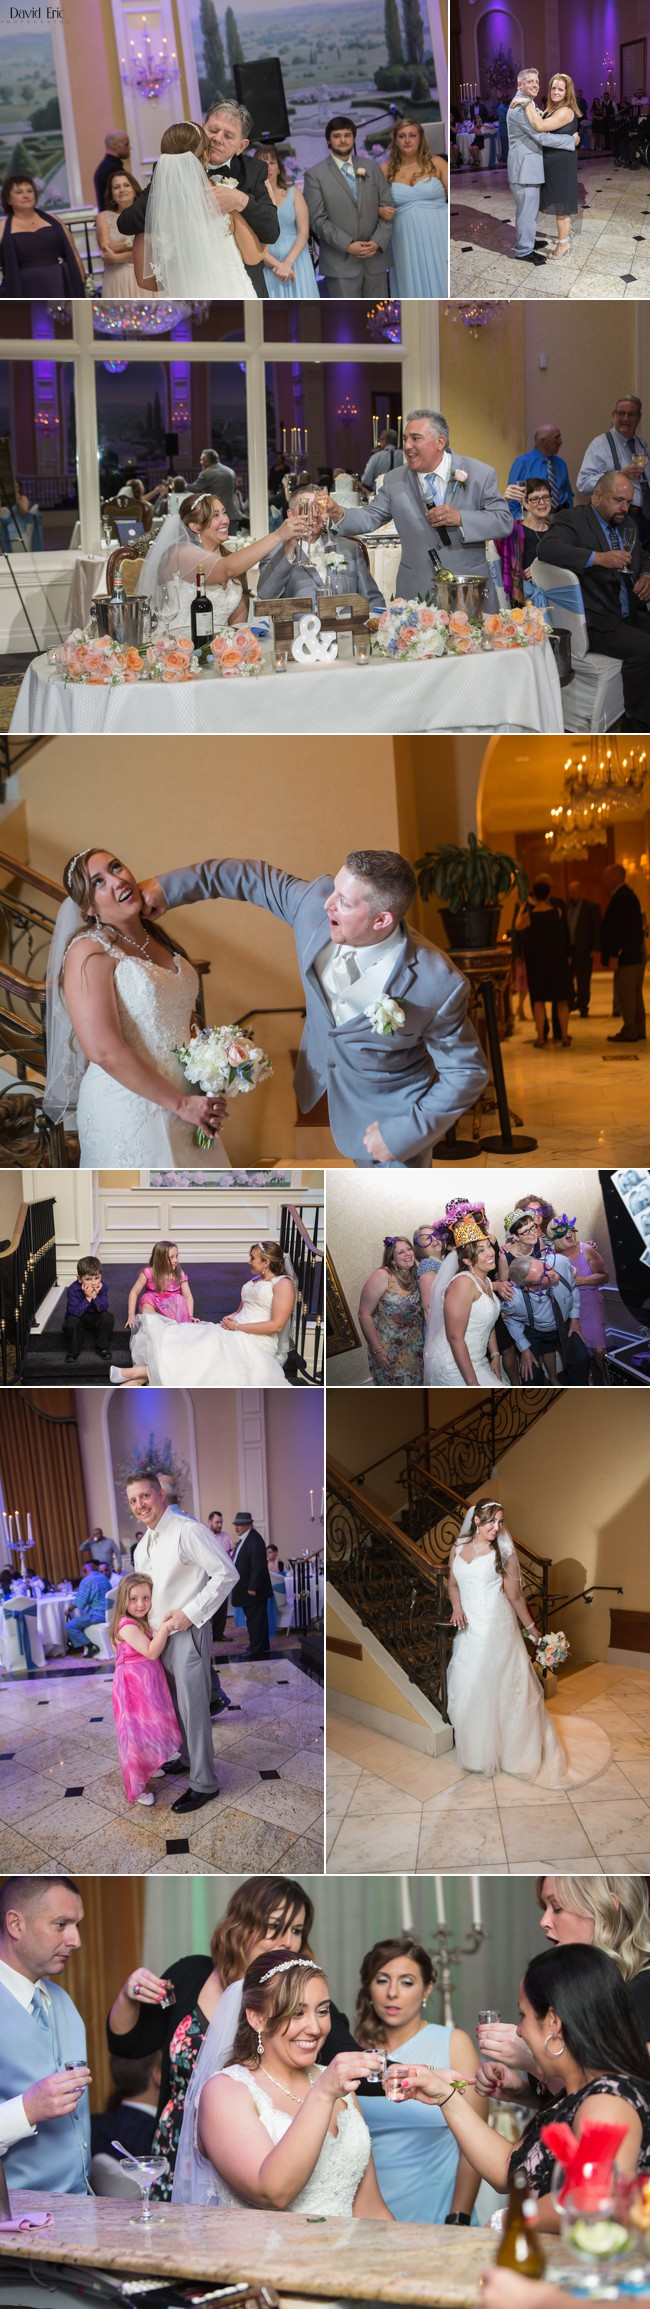 New Jersey Wedding - David Eric Photography  46